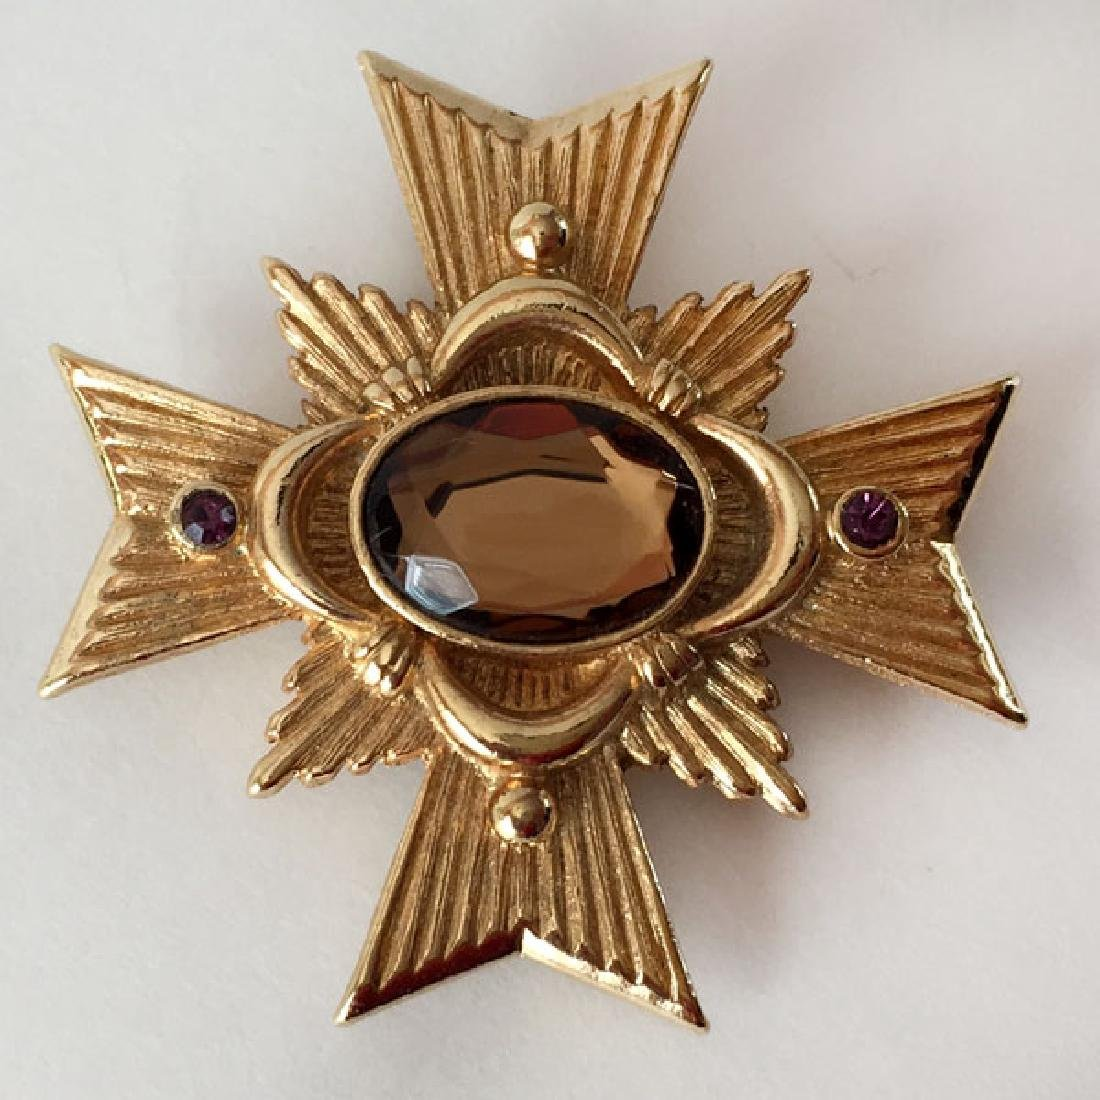 AVON: Gold plated textured CROSS shaped medal / brooch - 3